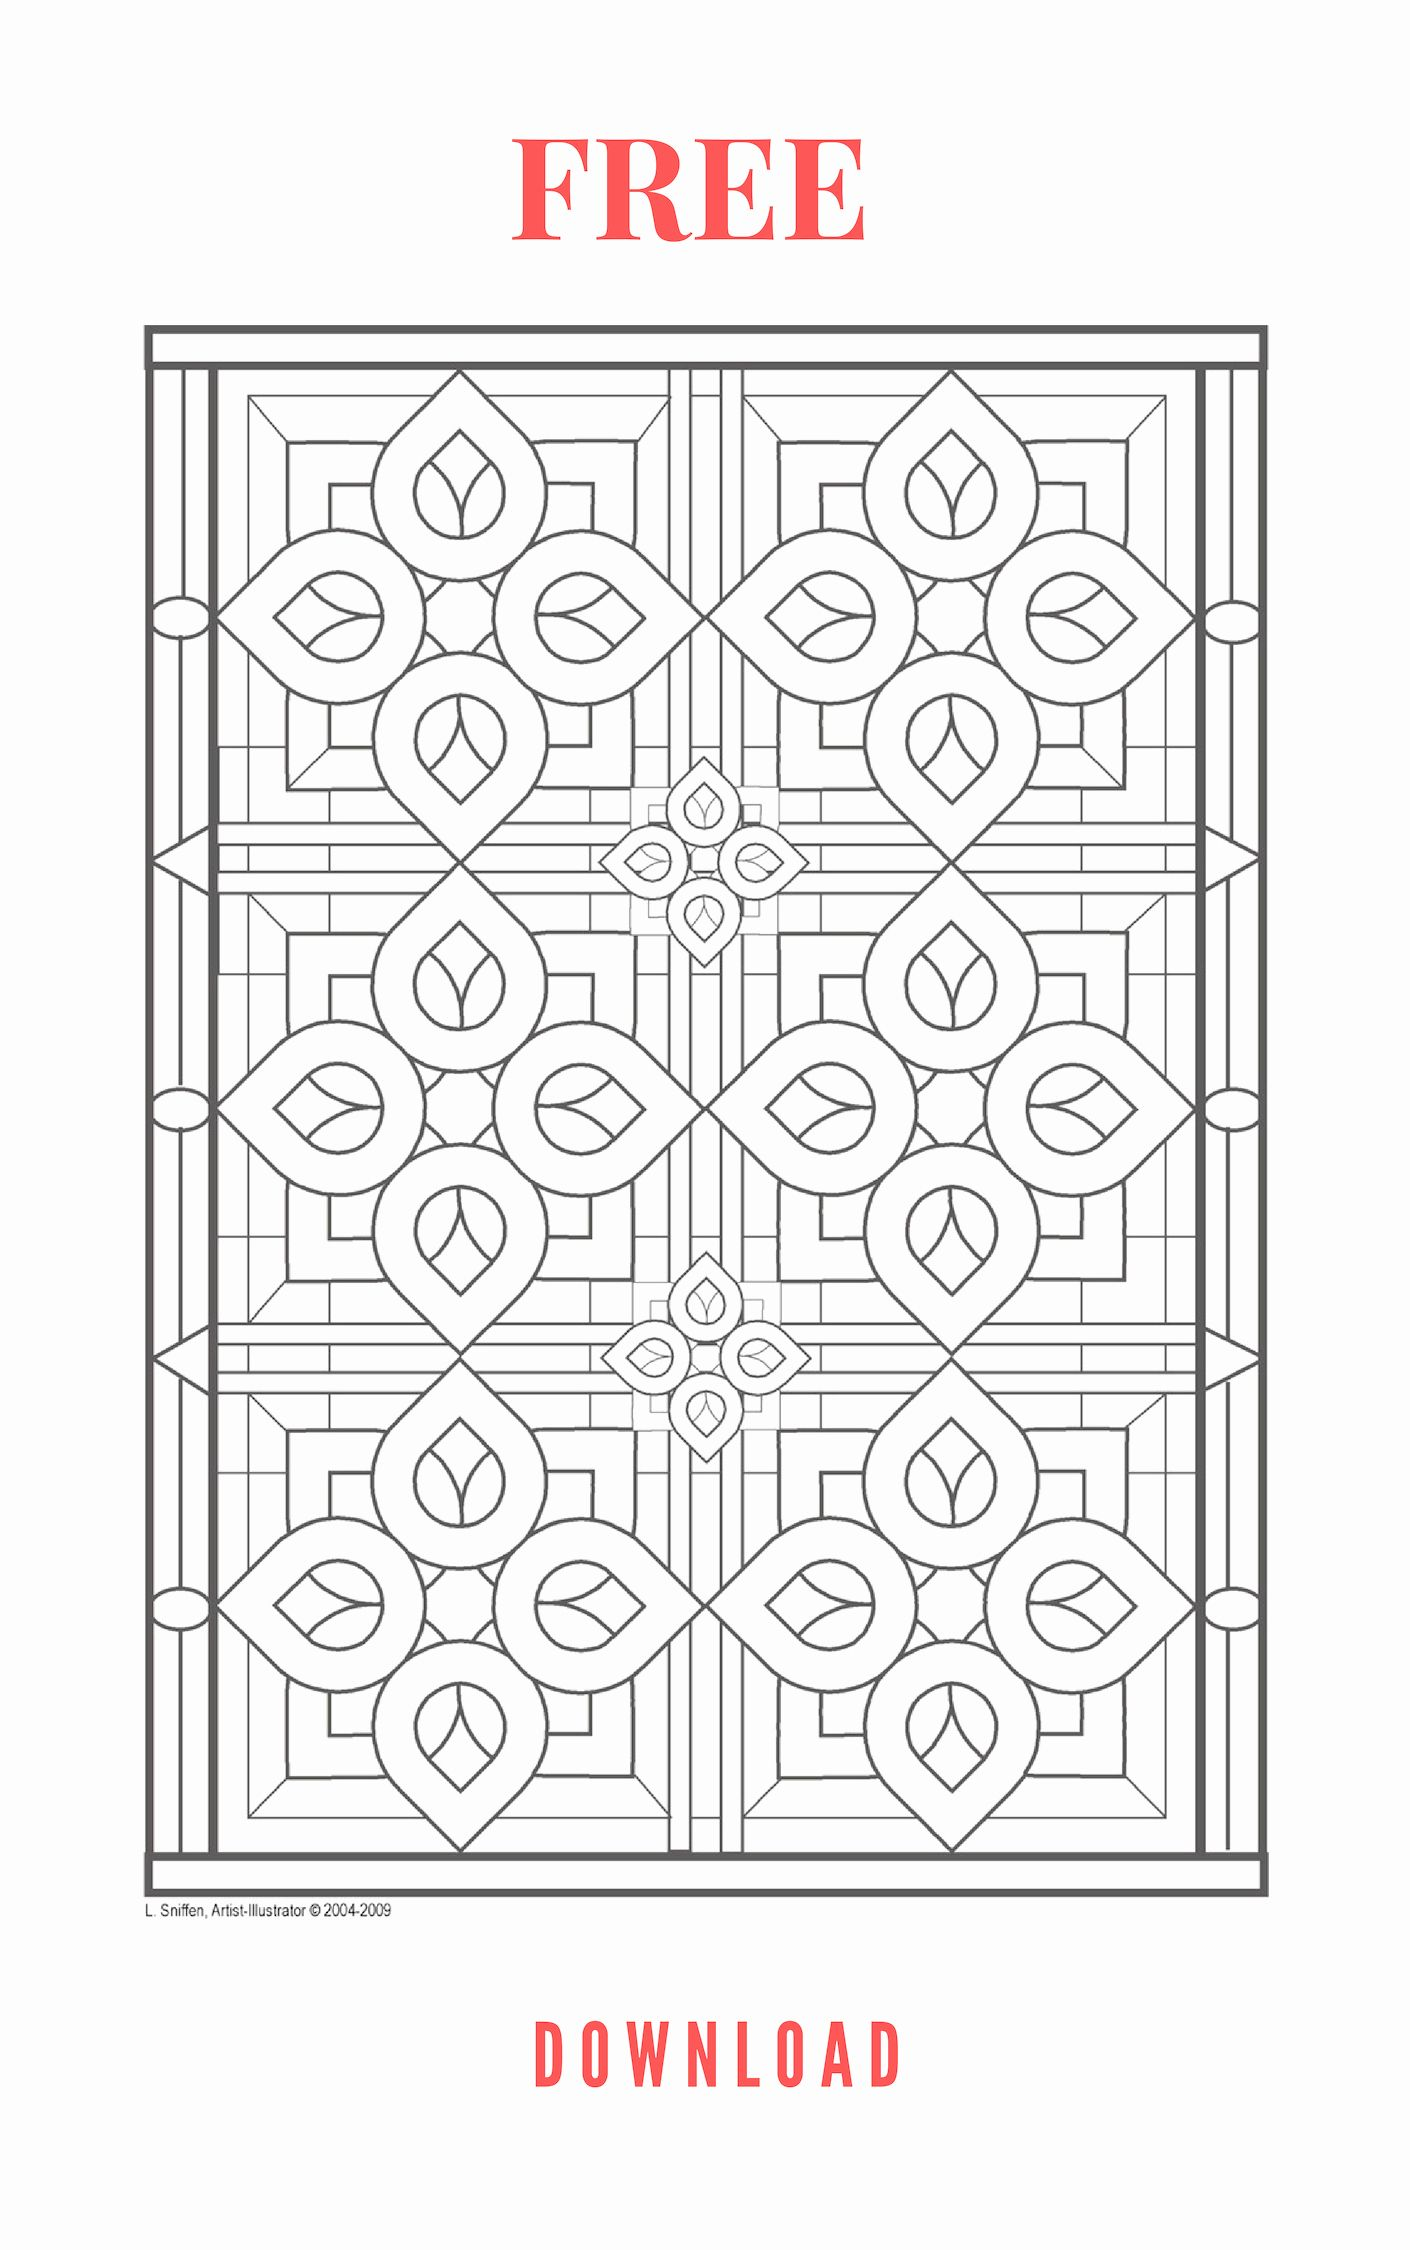 Free Hanukkah Coloring Pages Printable Awesome This Free